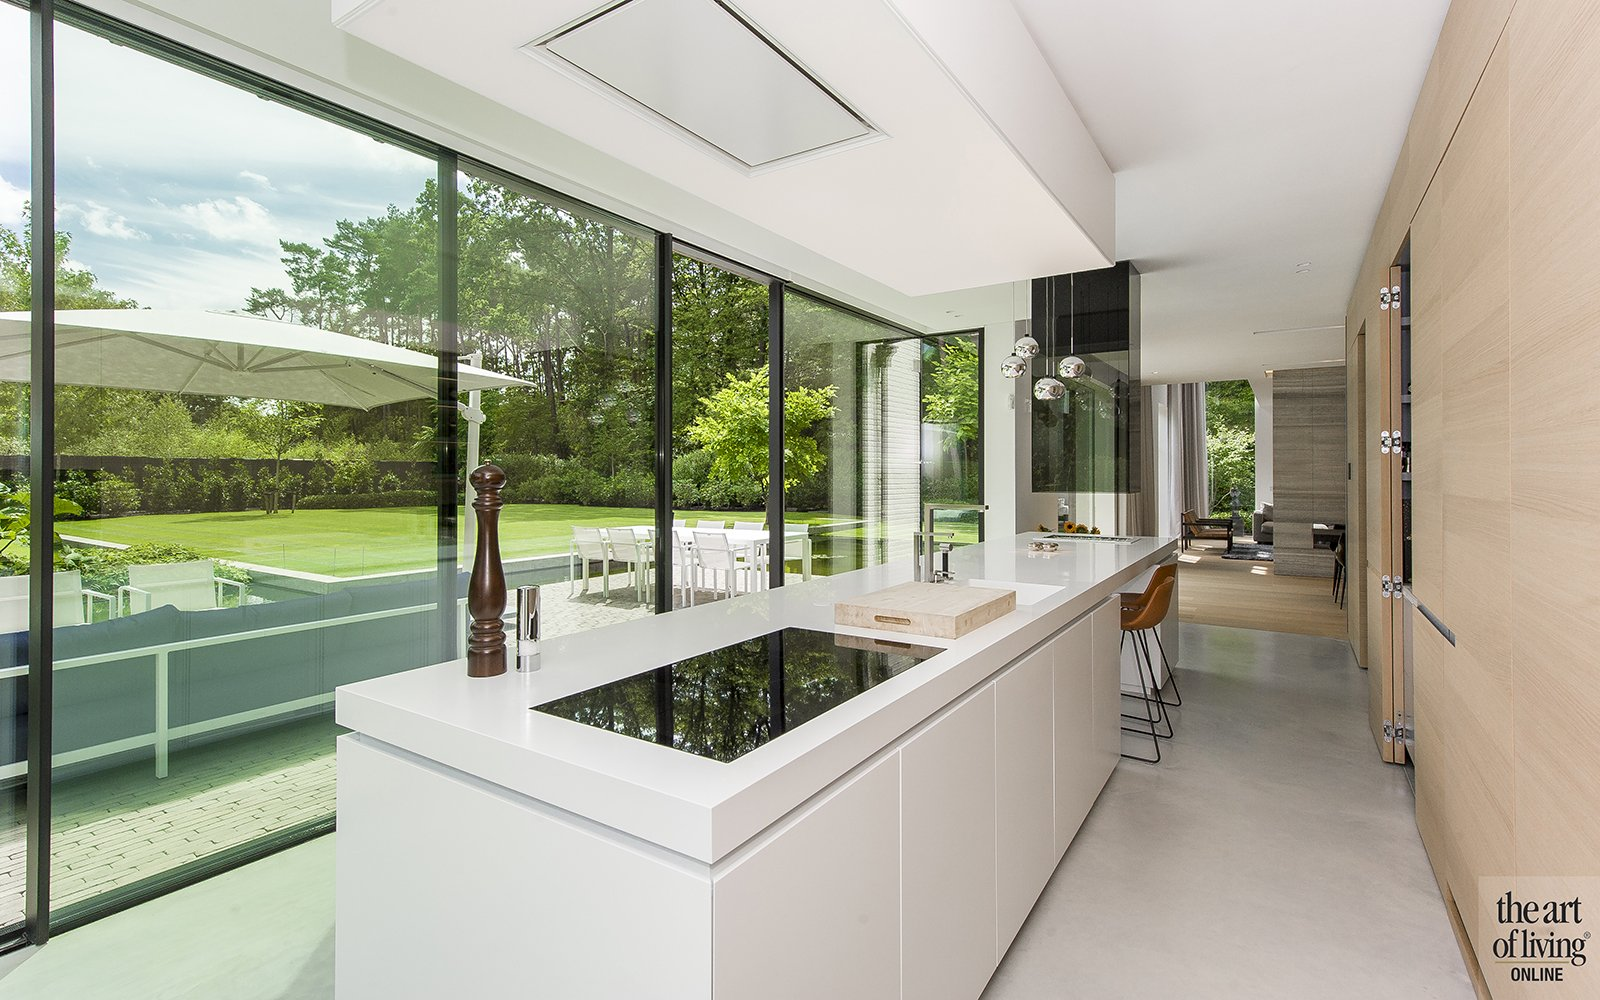 Witte moderne keuken, Vlassak architects. the art of living